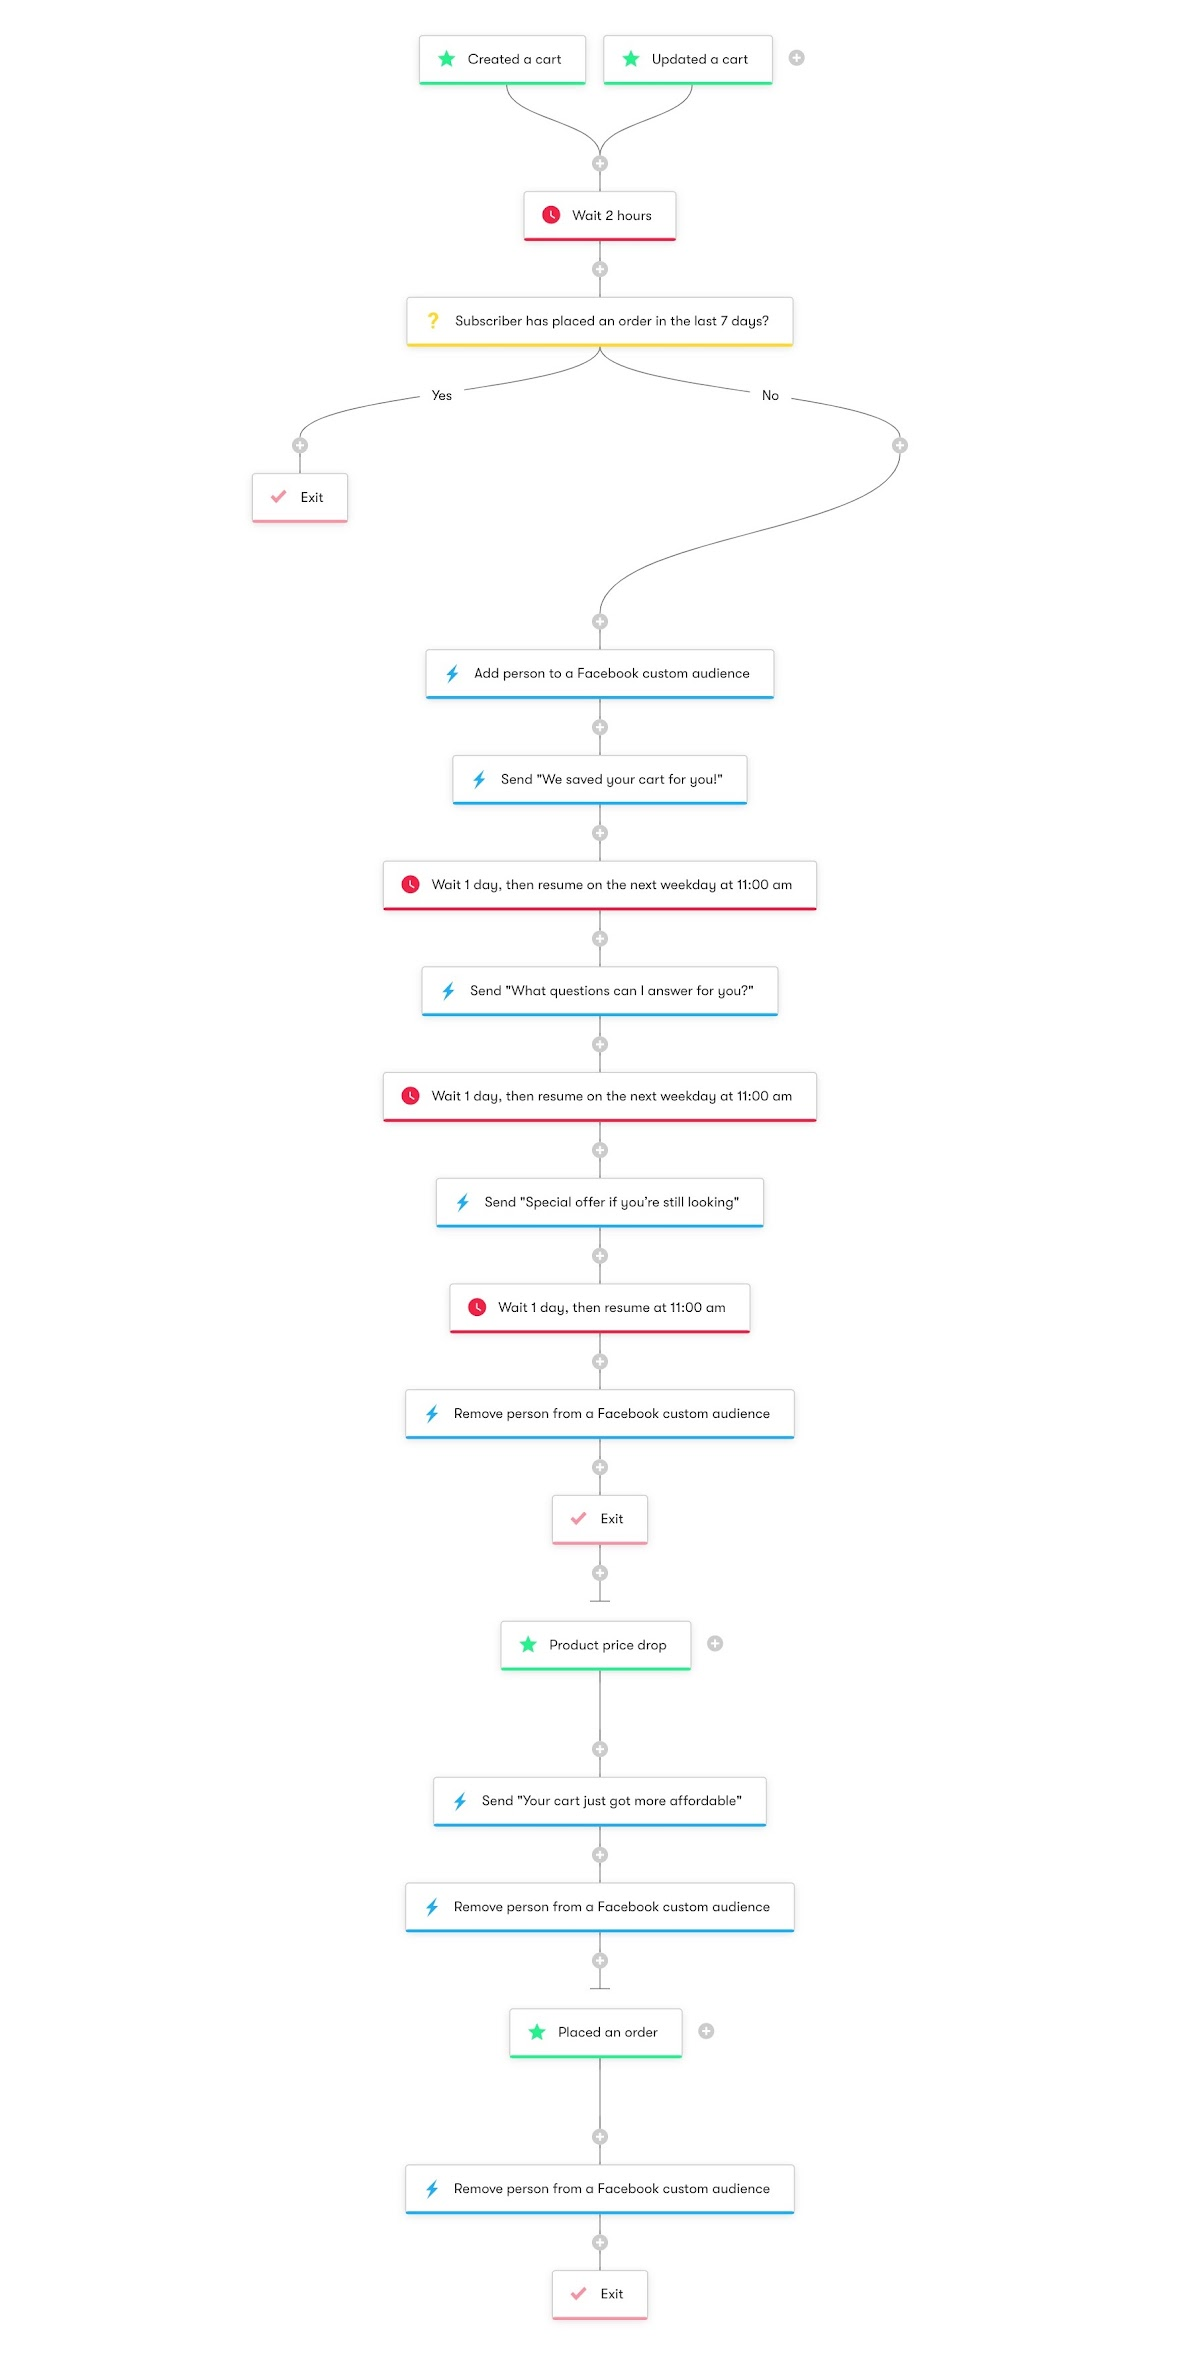 Shopper Activity API Cart Abandonment with Product Price Drop - Workflow Diagram